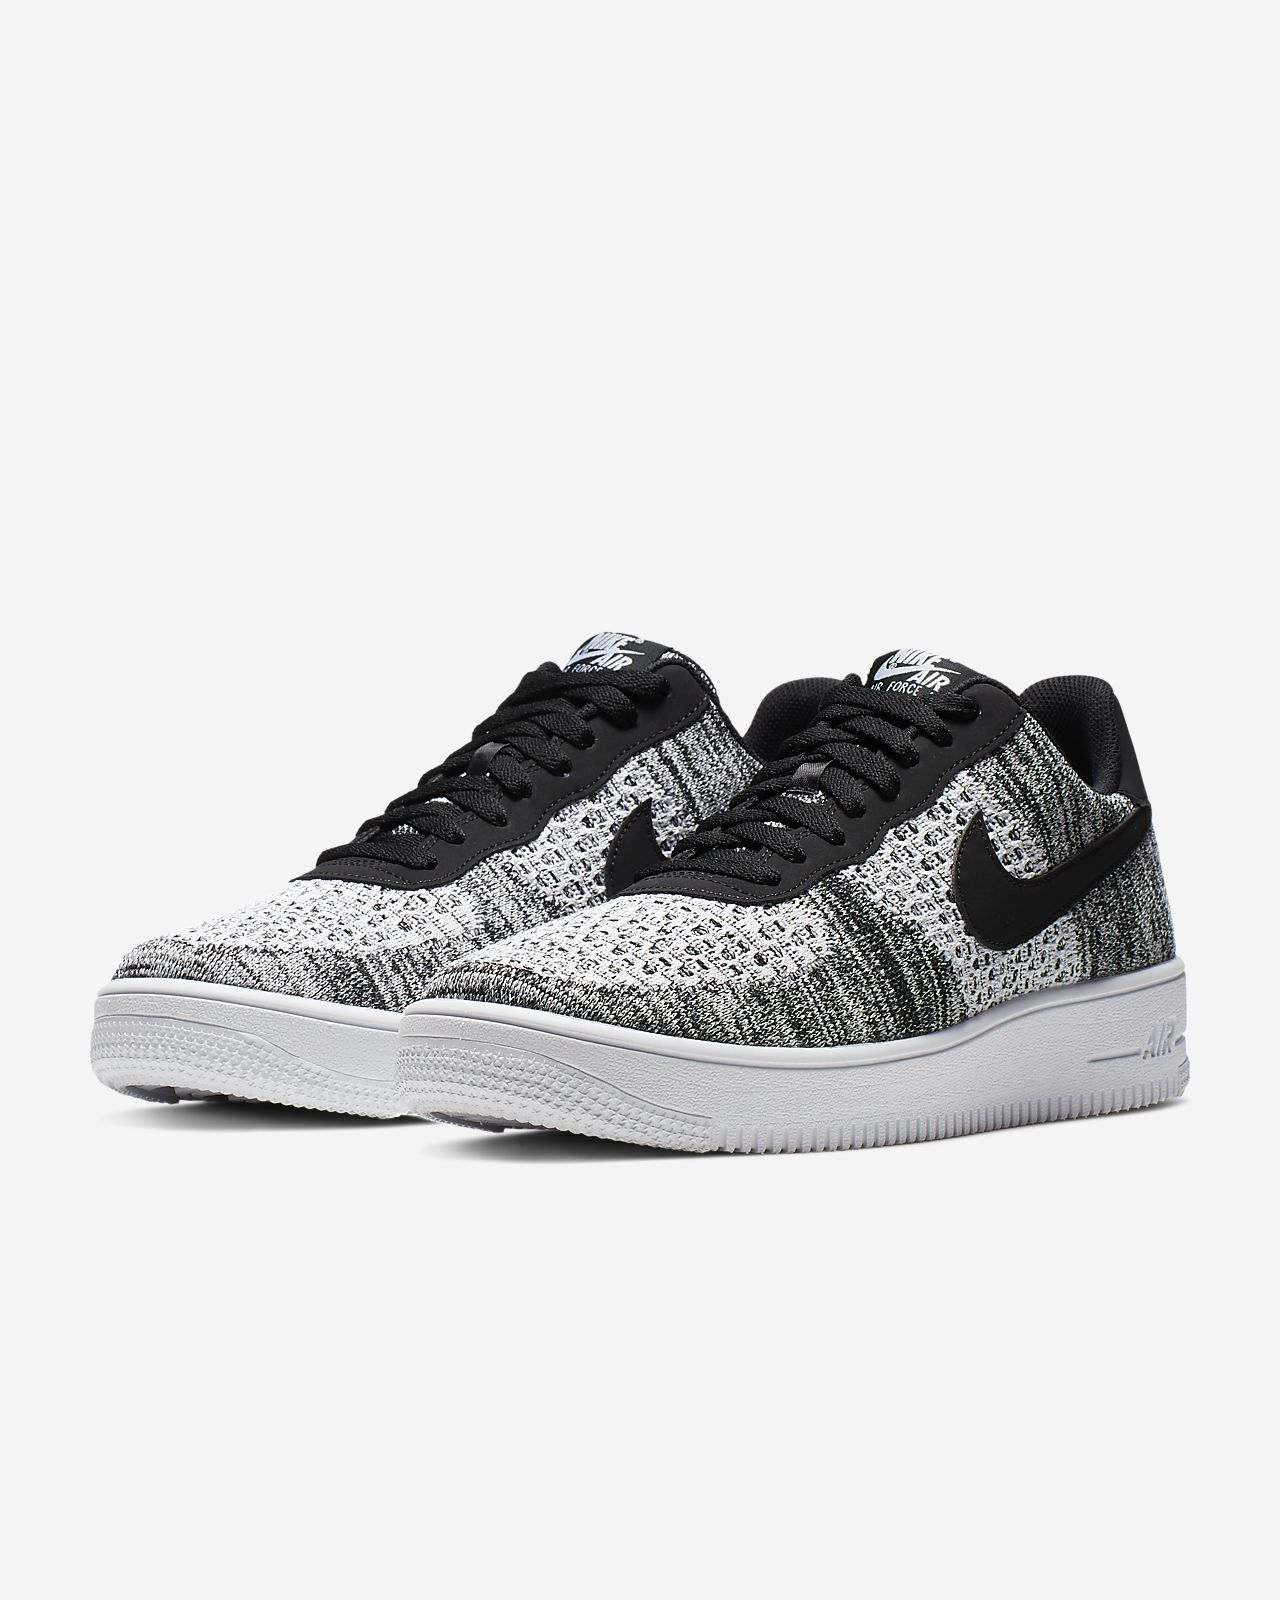 release date 68198 b68c4 ... Chaussure Nike Air Force 1 Flyknit 2.0 pour Homme